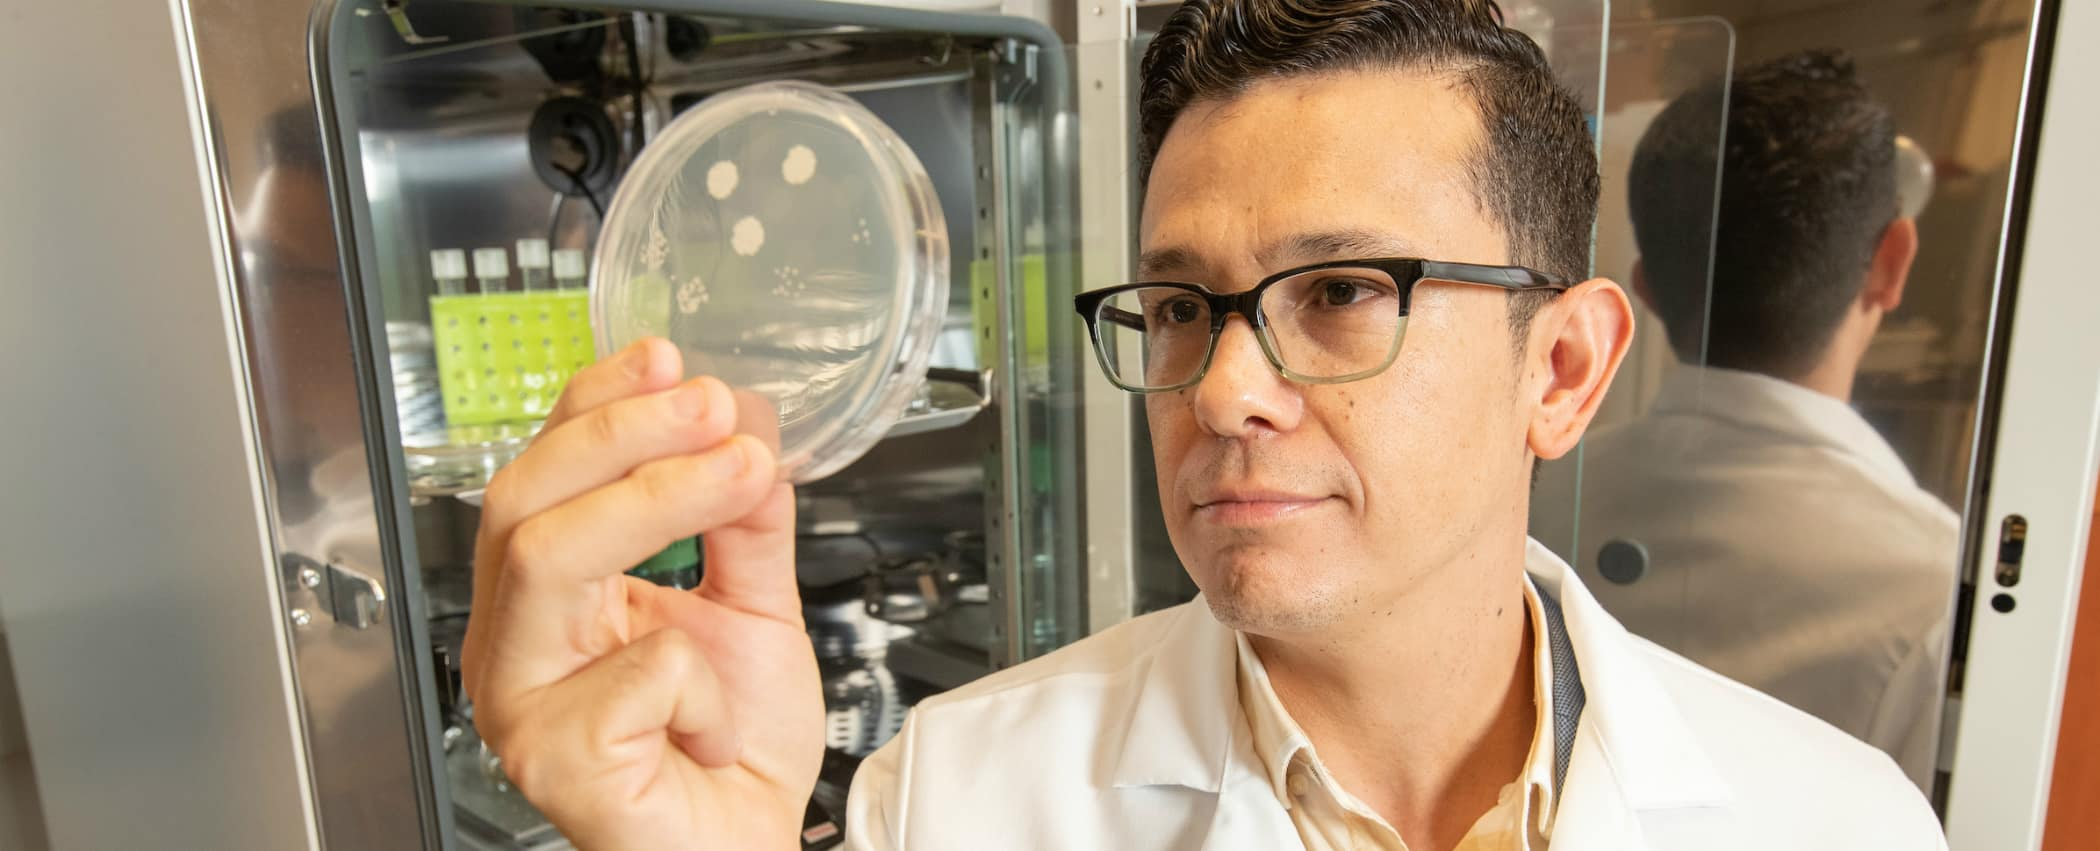 Dr. Hugo Castillo, professor of microbiology in the Aerospace Physiology program at Embry-Riddle Aeronautical University, works in a research lab on the Daytona Beach campus.